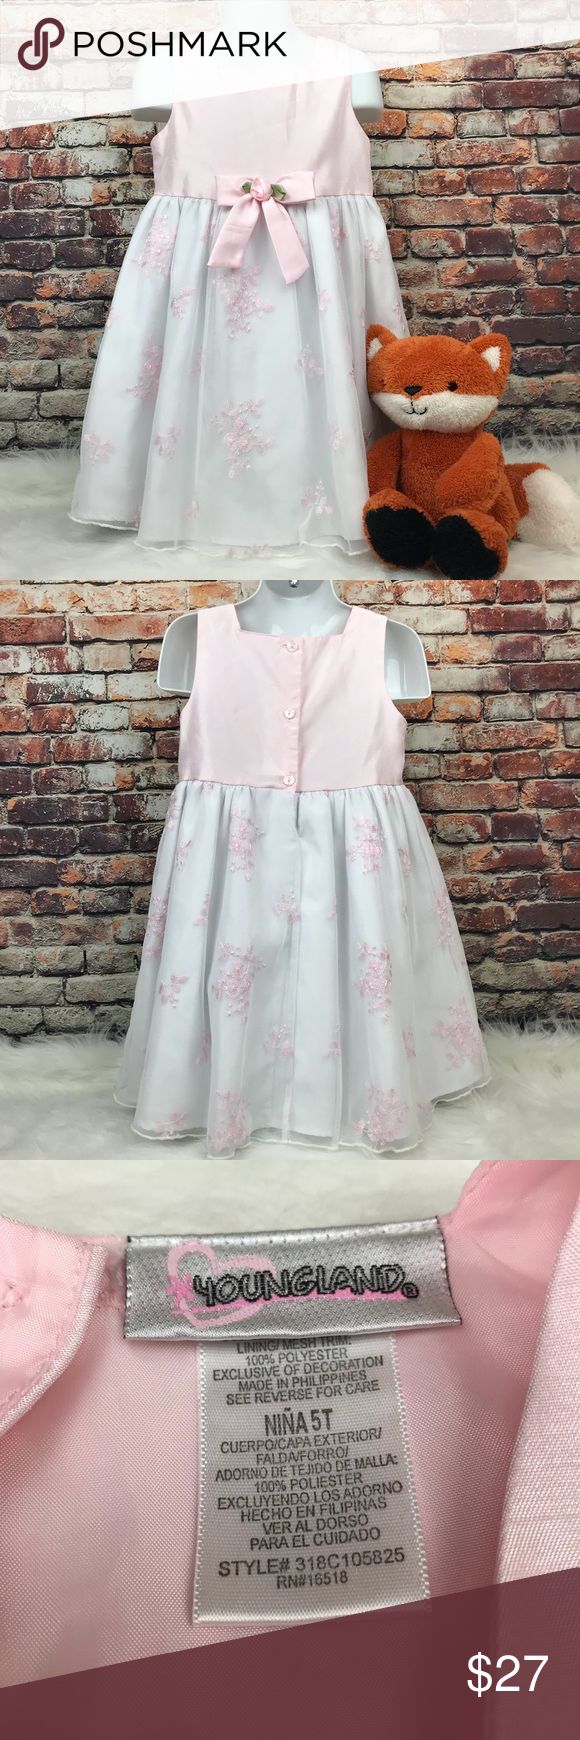 Youngland Pink White Formal Dress 5t Floral Youngland Pink White Formal Dress 5t Skirt Has 2 Layers Of Lining And New For F Fashion Dresses Clothes Design [ 1740 x 580 Pixel ]